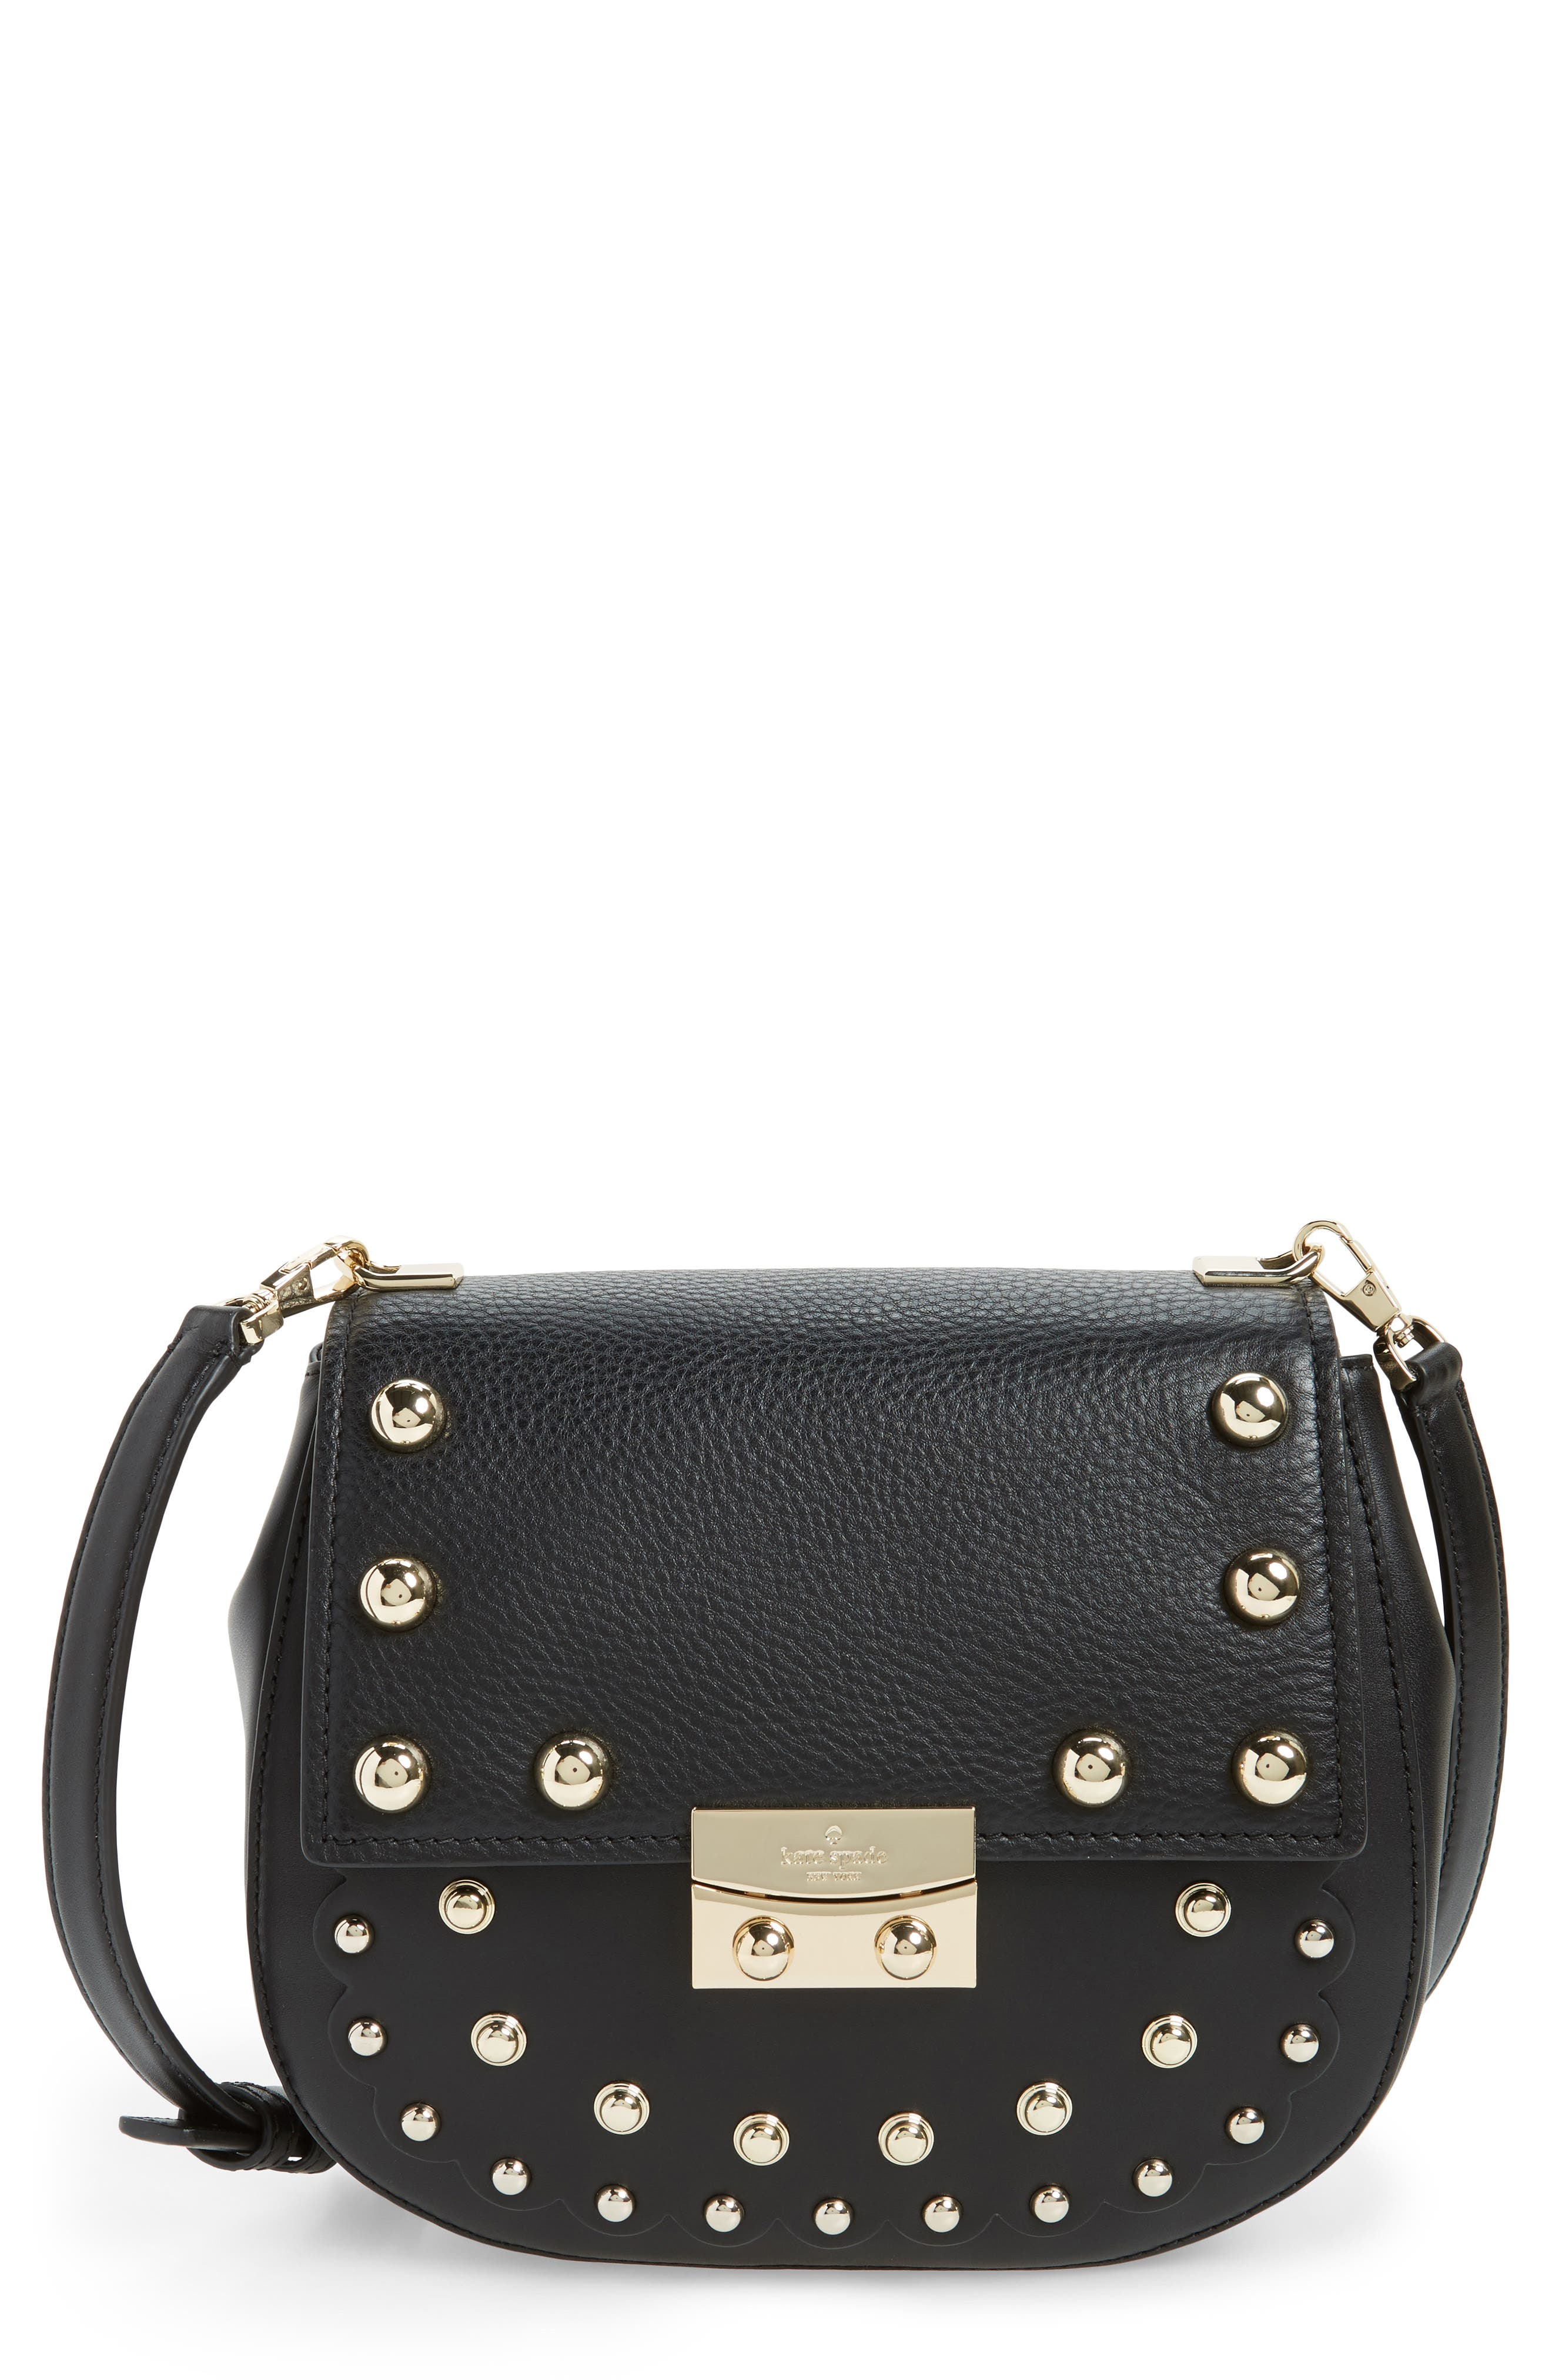 kate spade new york madison stewart street - byrdie studded leather crossbody bag